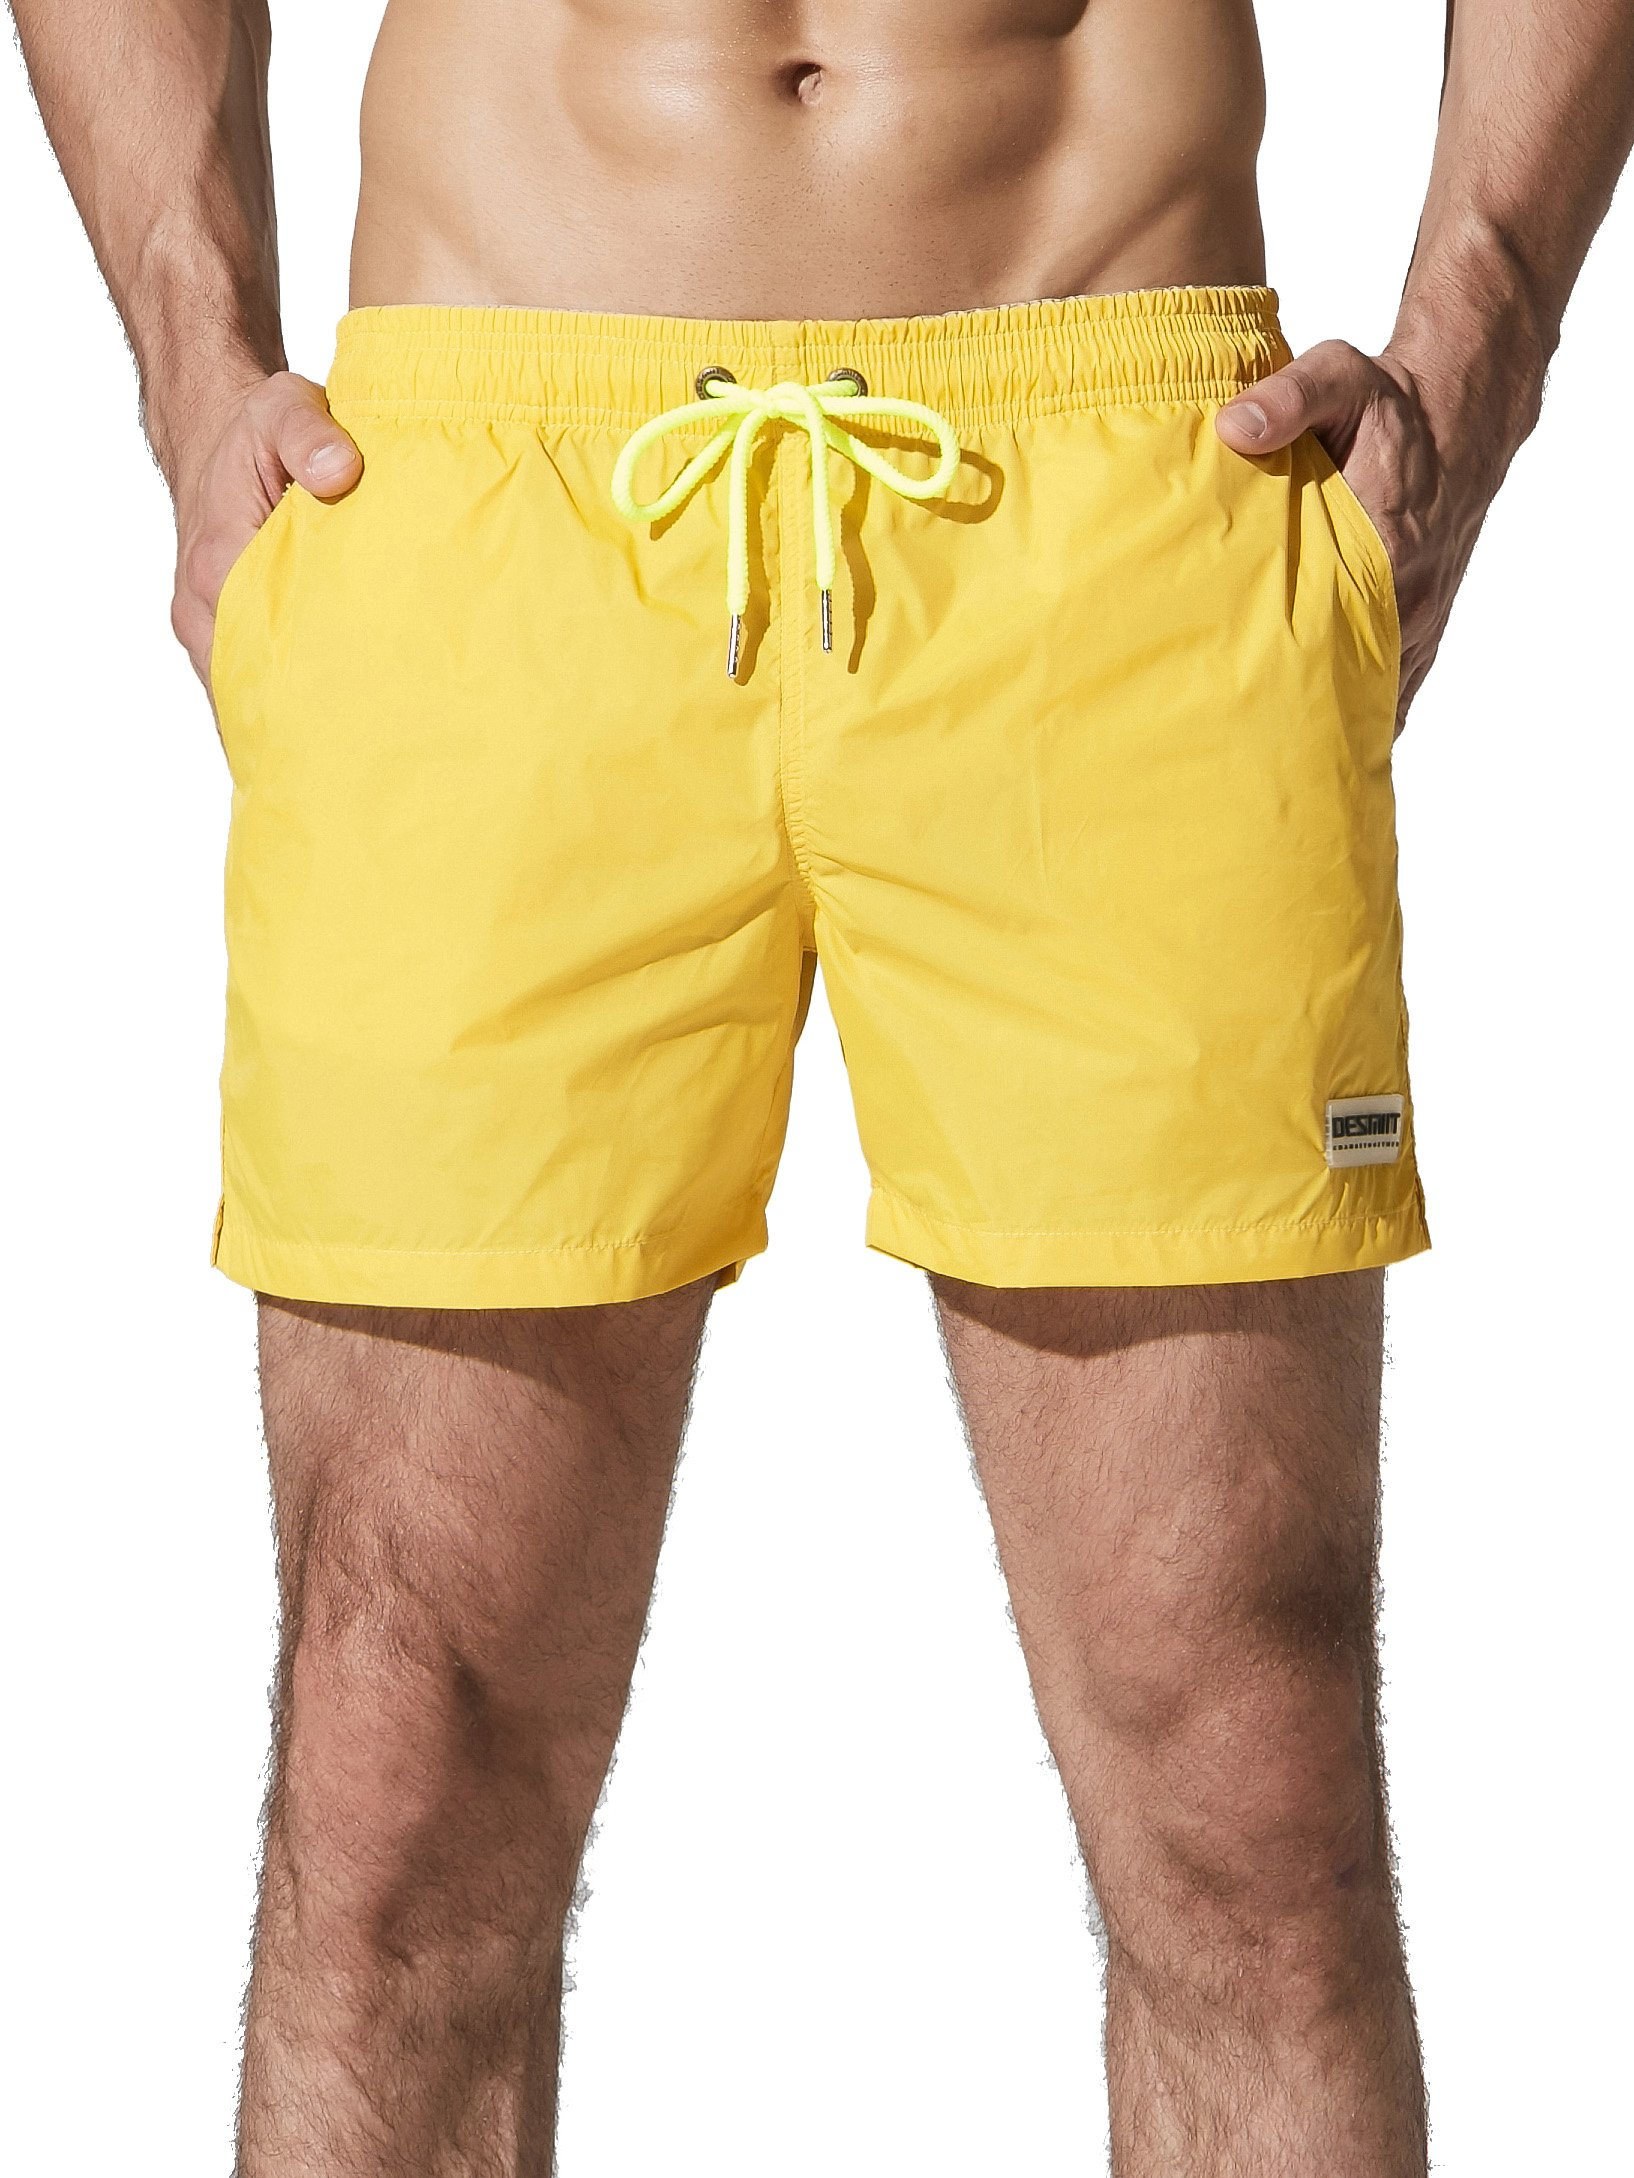 Neleus Men's Athletic Running Beach Shorts with Pockets,802,Yellow,M,Tag XL